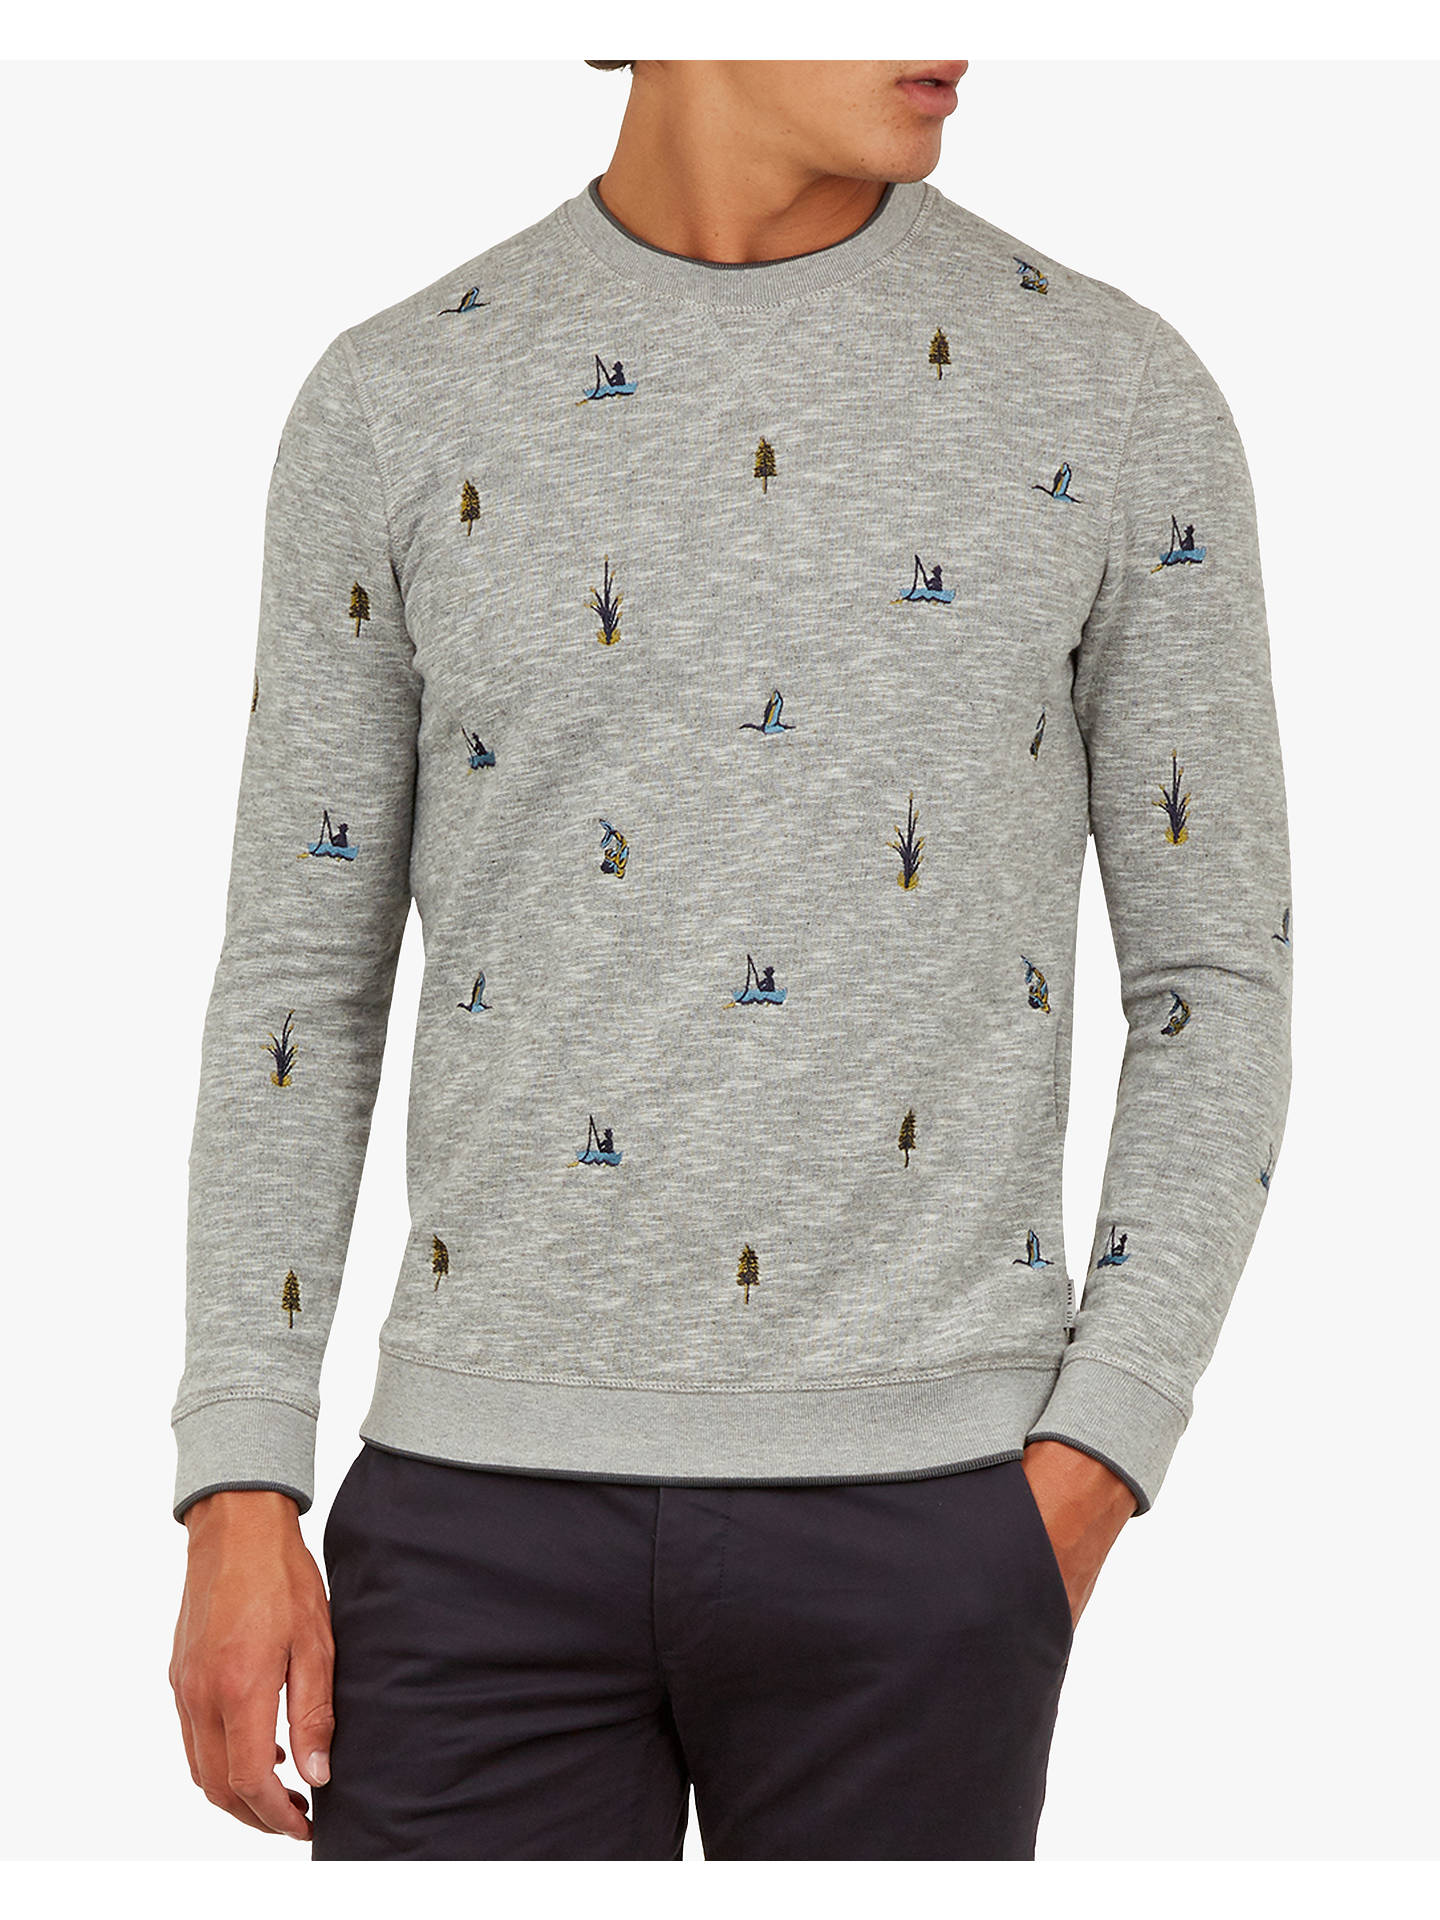 Buy Ted Baker Embroidered Sweatshirt, Grey Marl, XS Online at johnlewis.com